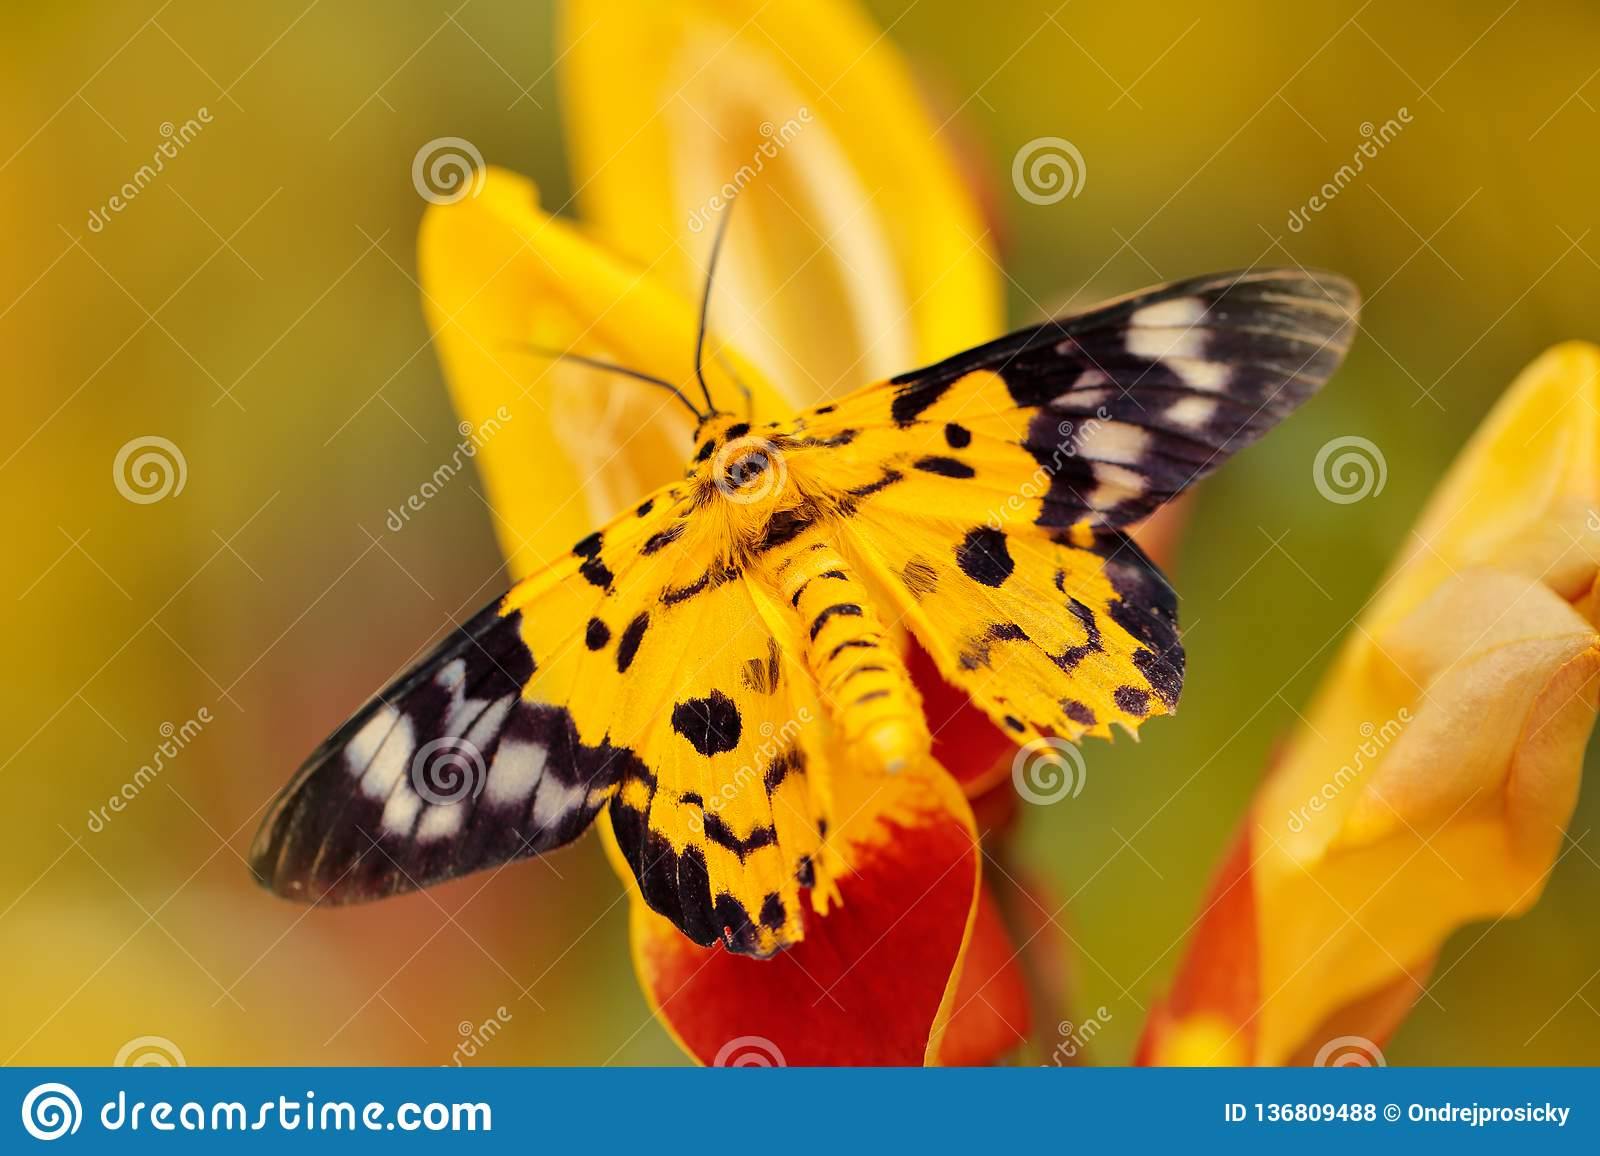 Beautiful butterfly sitting on the red yellow flower. Yellow insect in the nature green forest habitat, south of Asia. Moth in the